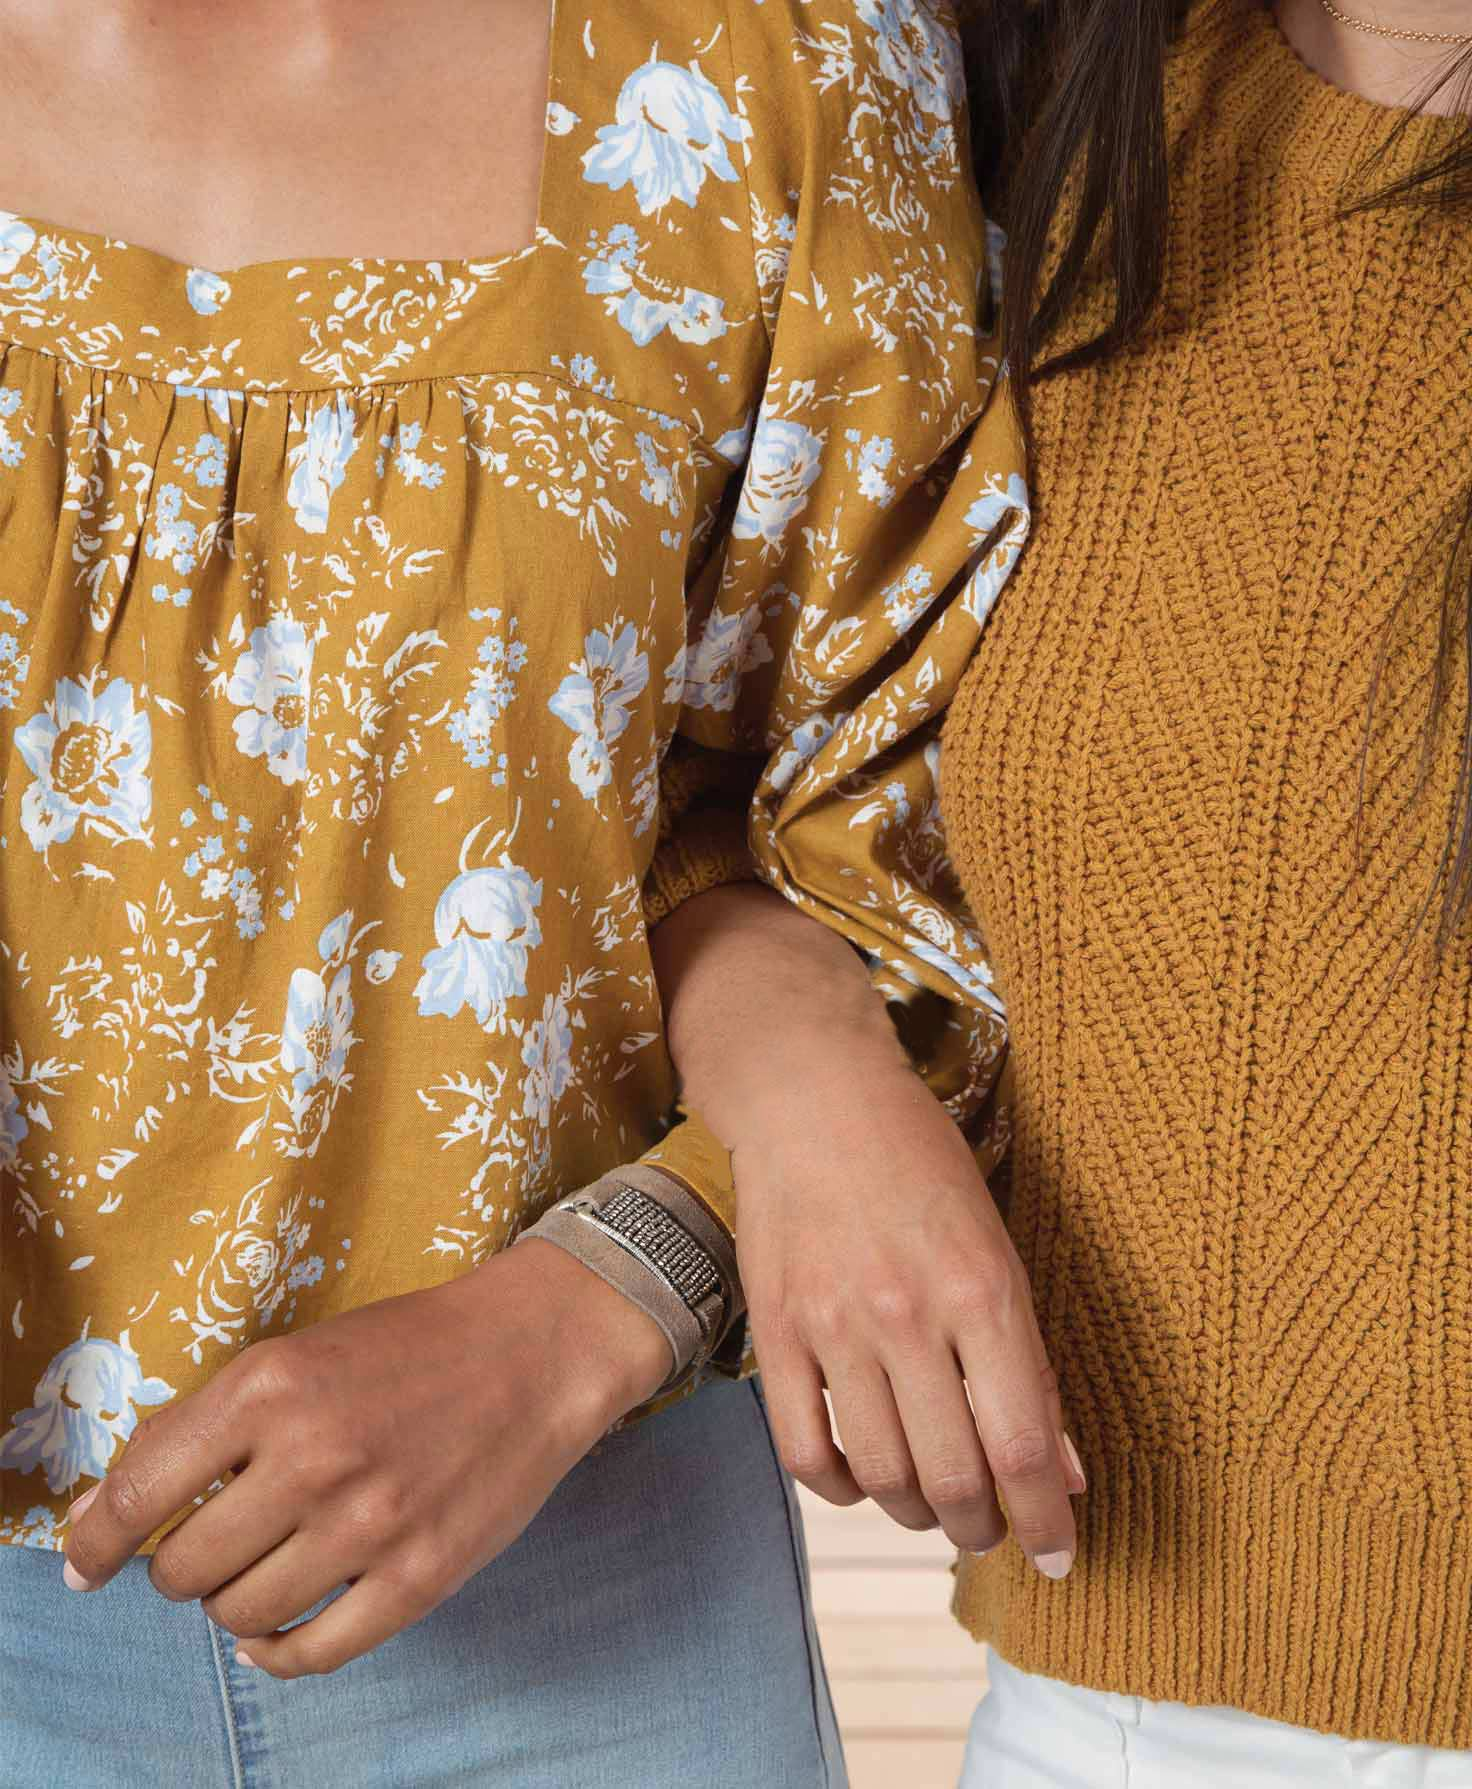 Two models are shown with their arms linked together. One model wears the Brilliant Leather Wrap Bracelet wrapped around her wrist for a subtle, sparkling accent.